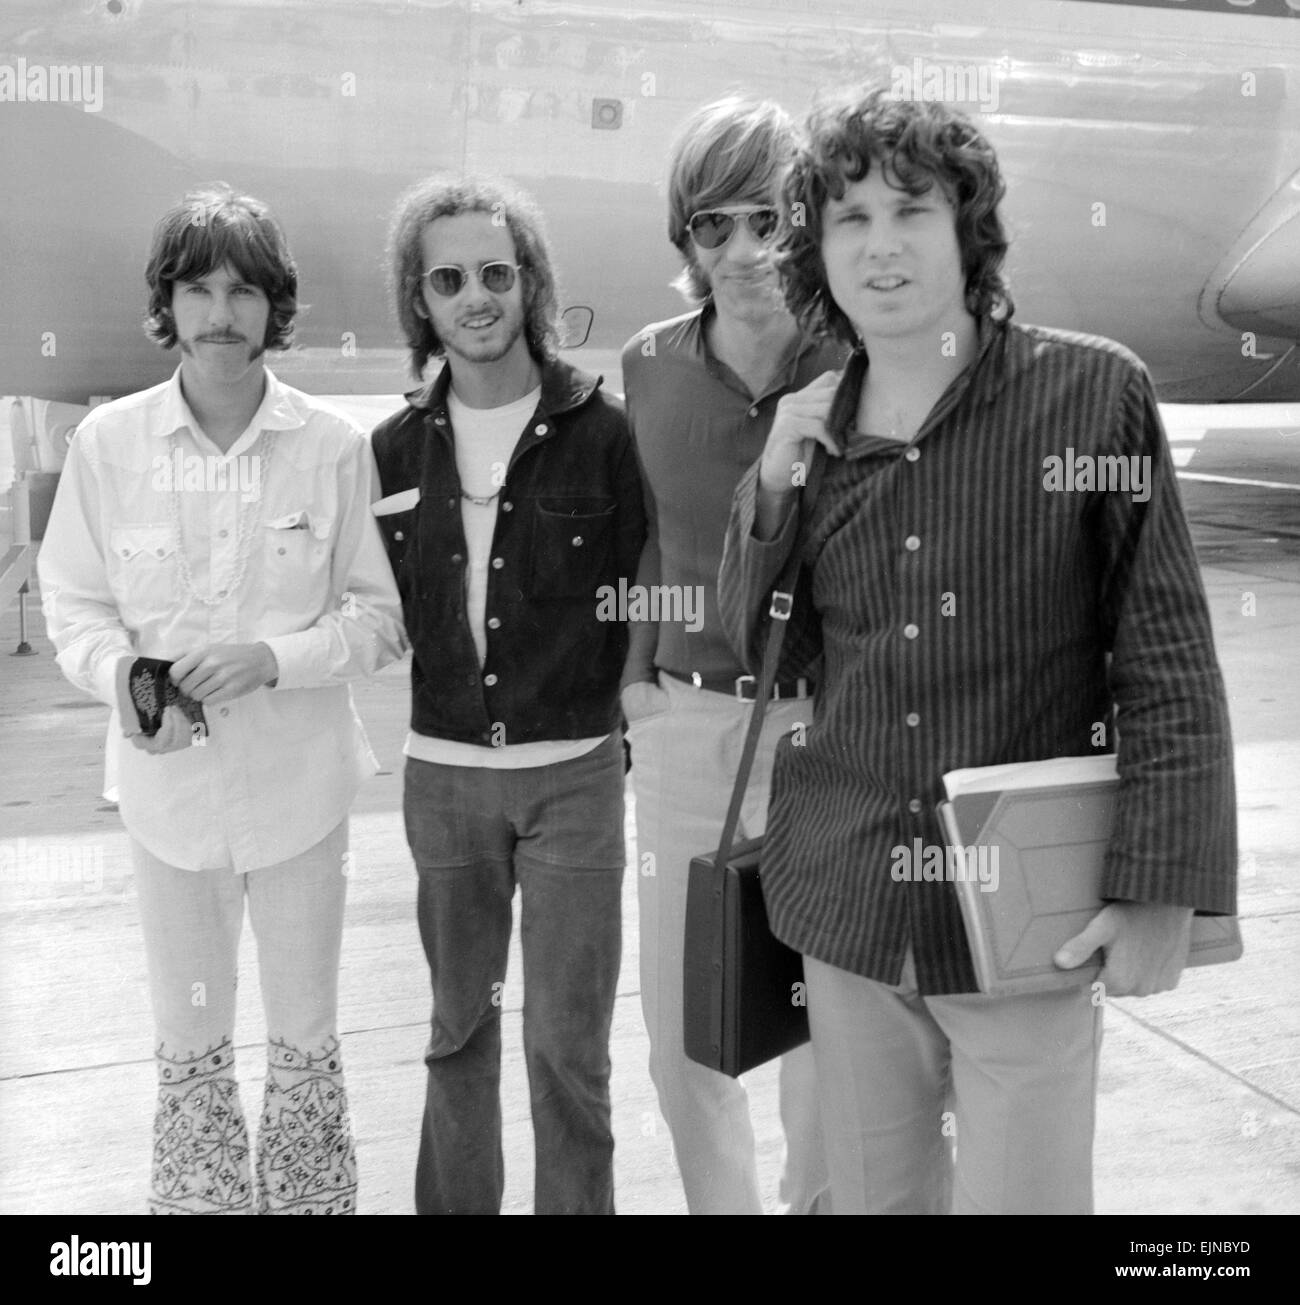 American rock group The Doors arrive at Londonu0027s Heathrow airport. They are left to right drummer John Densmore guitarist Robbie Krieger keyboard player ...  sc 1 st  Alamy & American rock group The Doors arrive at Londonu0027s Heathrow airport ...